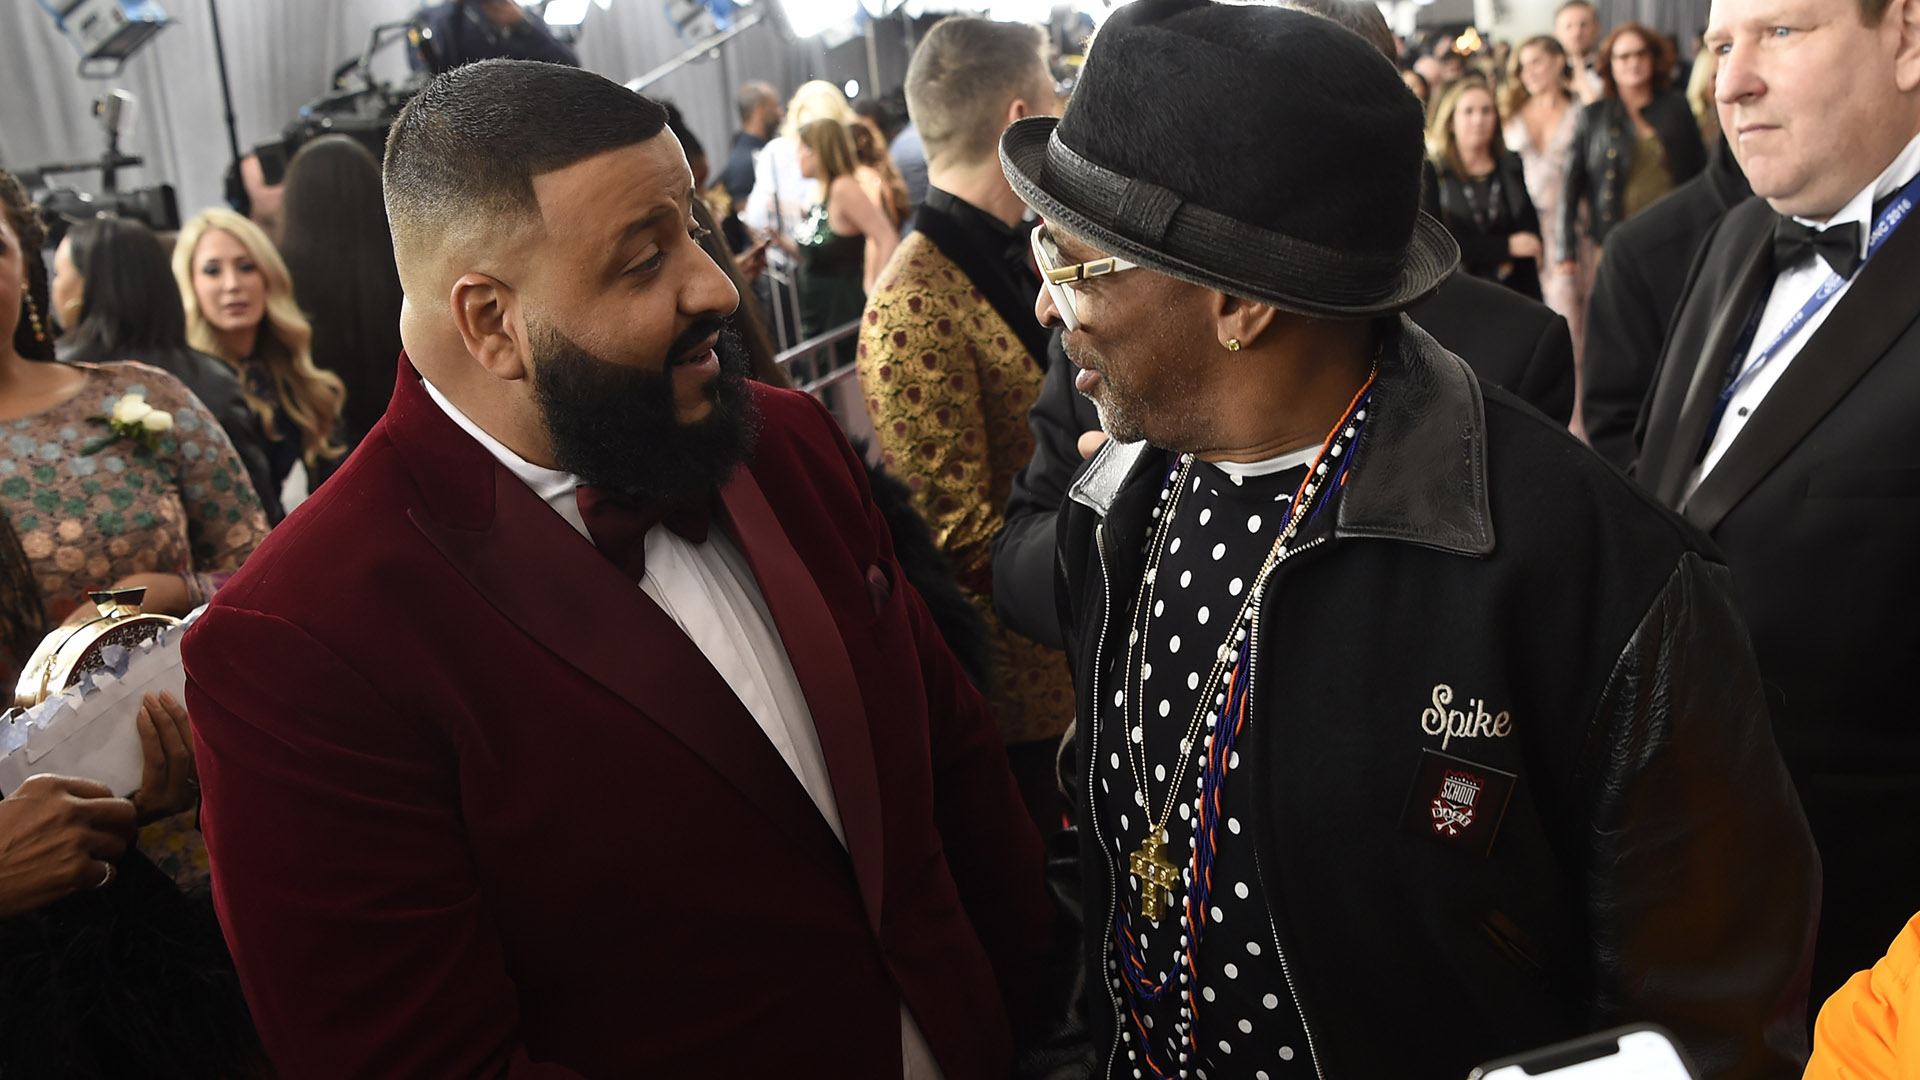 DJ Khaled has an impromptu red carpet run-in with famed director Spike Lee.